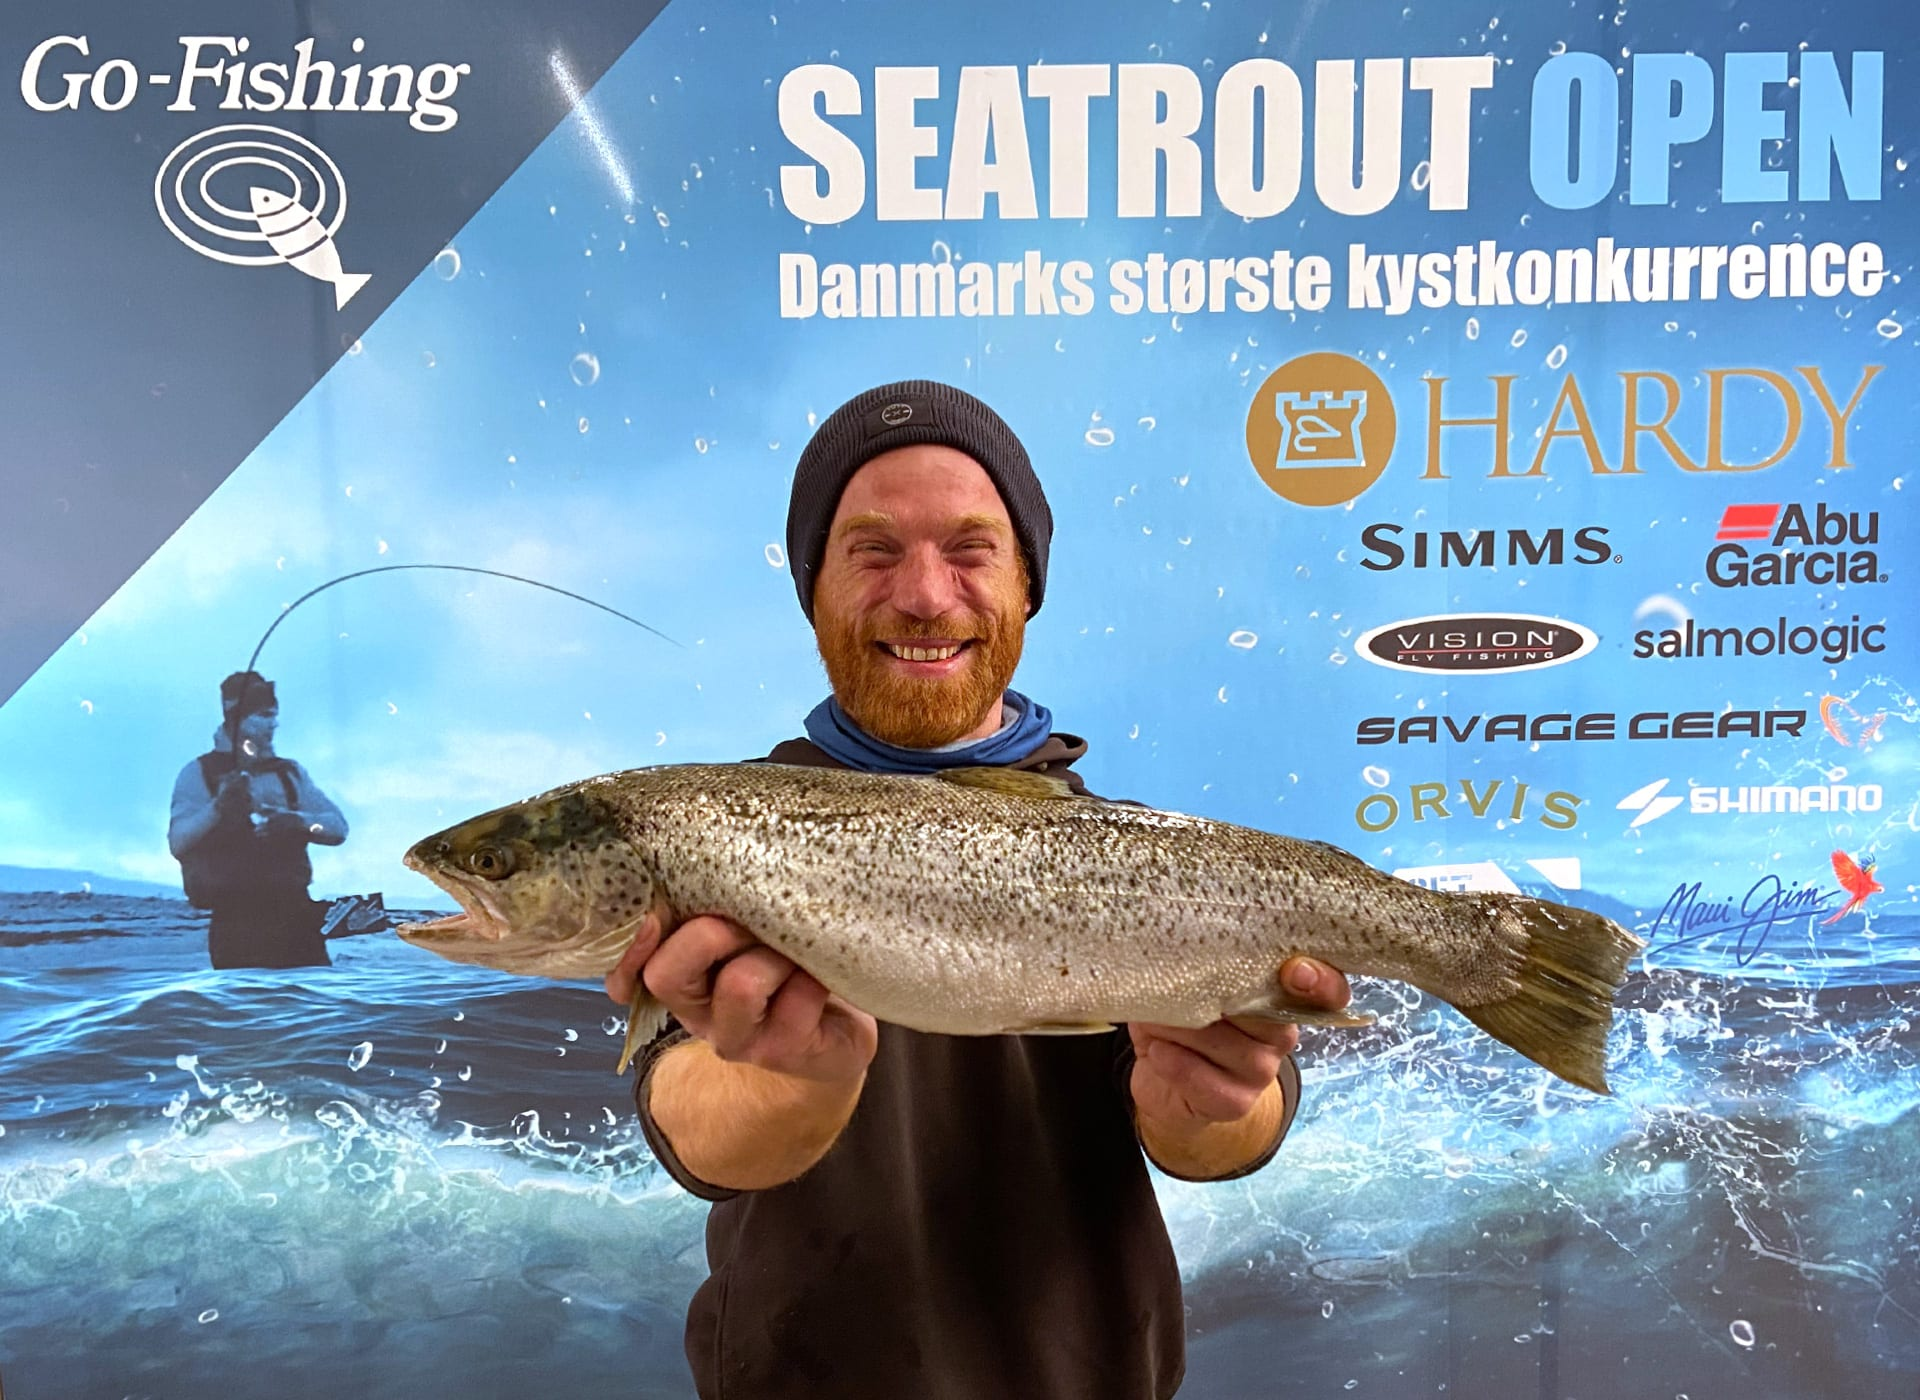 Seatrout Open deltager Hasse Gunnar